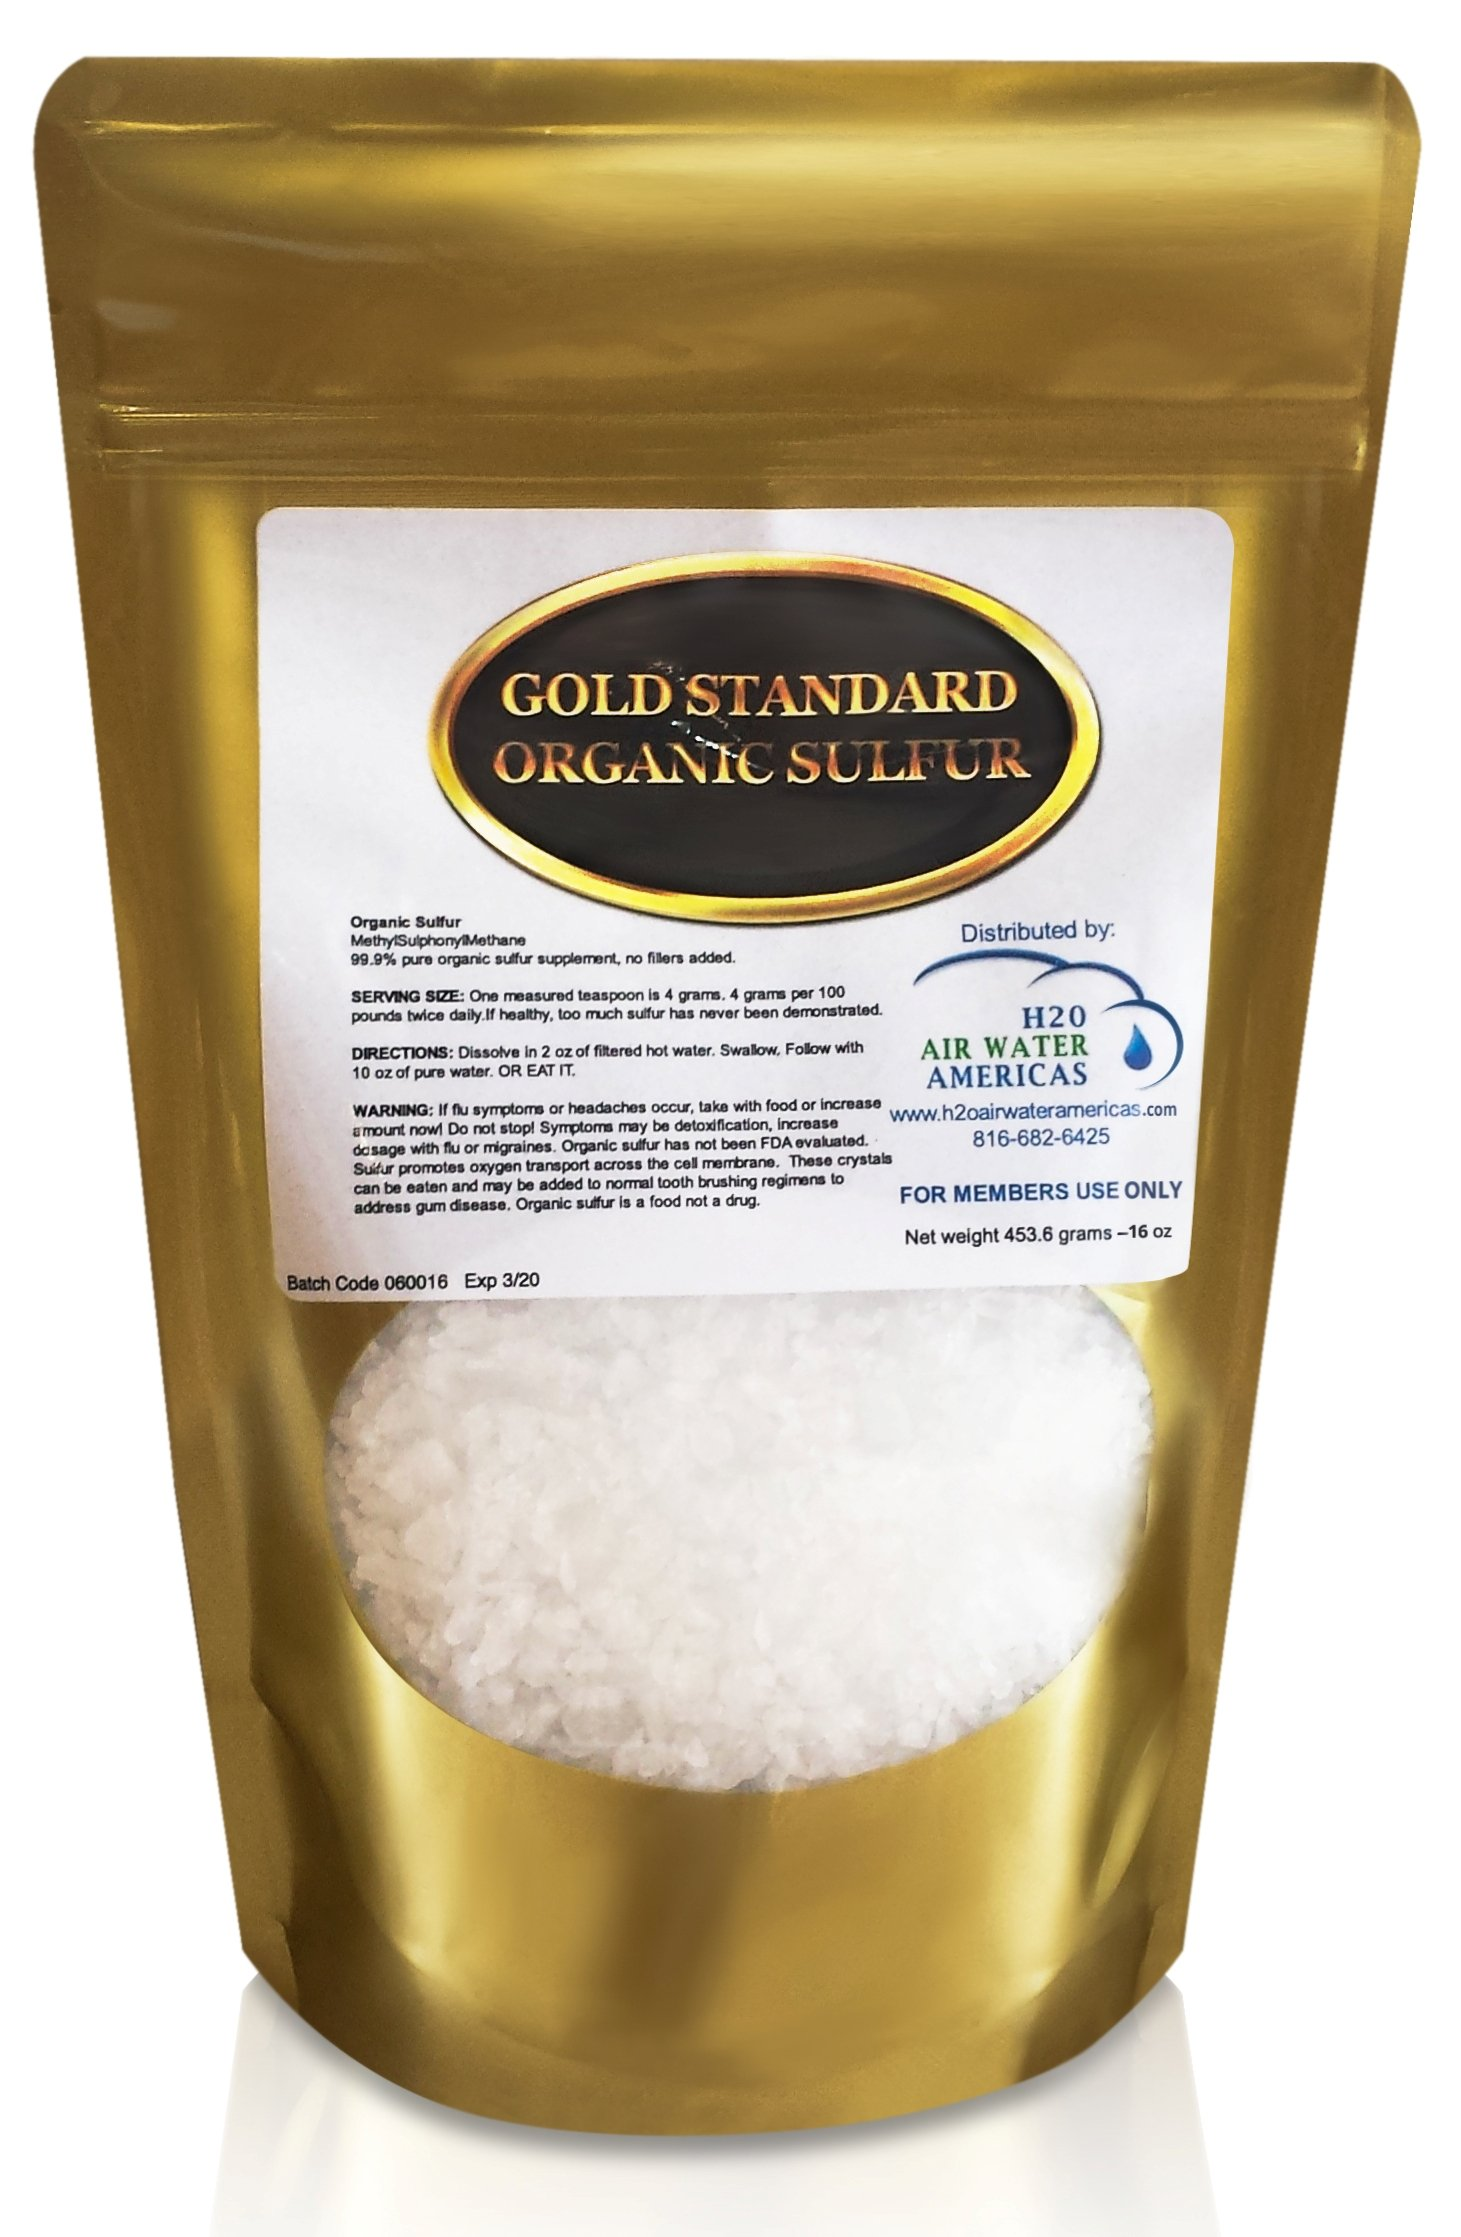 Gold Standard Organic Sulfur Crystals 1lb - 99.9% Pure MSM Crystals - Largest Granular Flakes Available! 3rd Party Tested **Same Day Priority Shipping** by H2O Air Water Americas